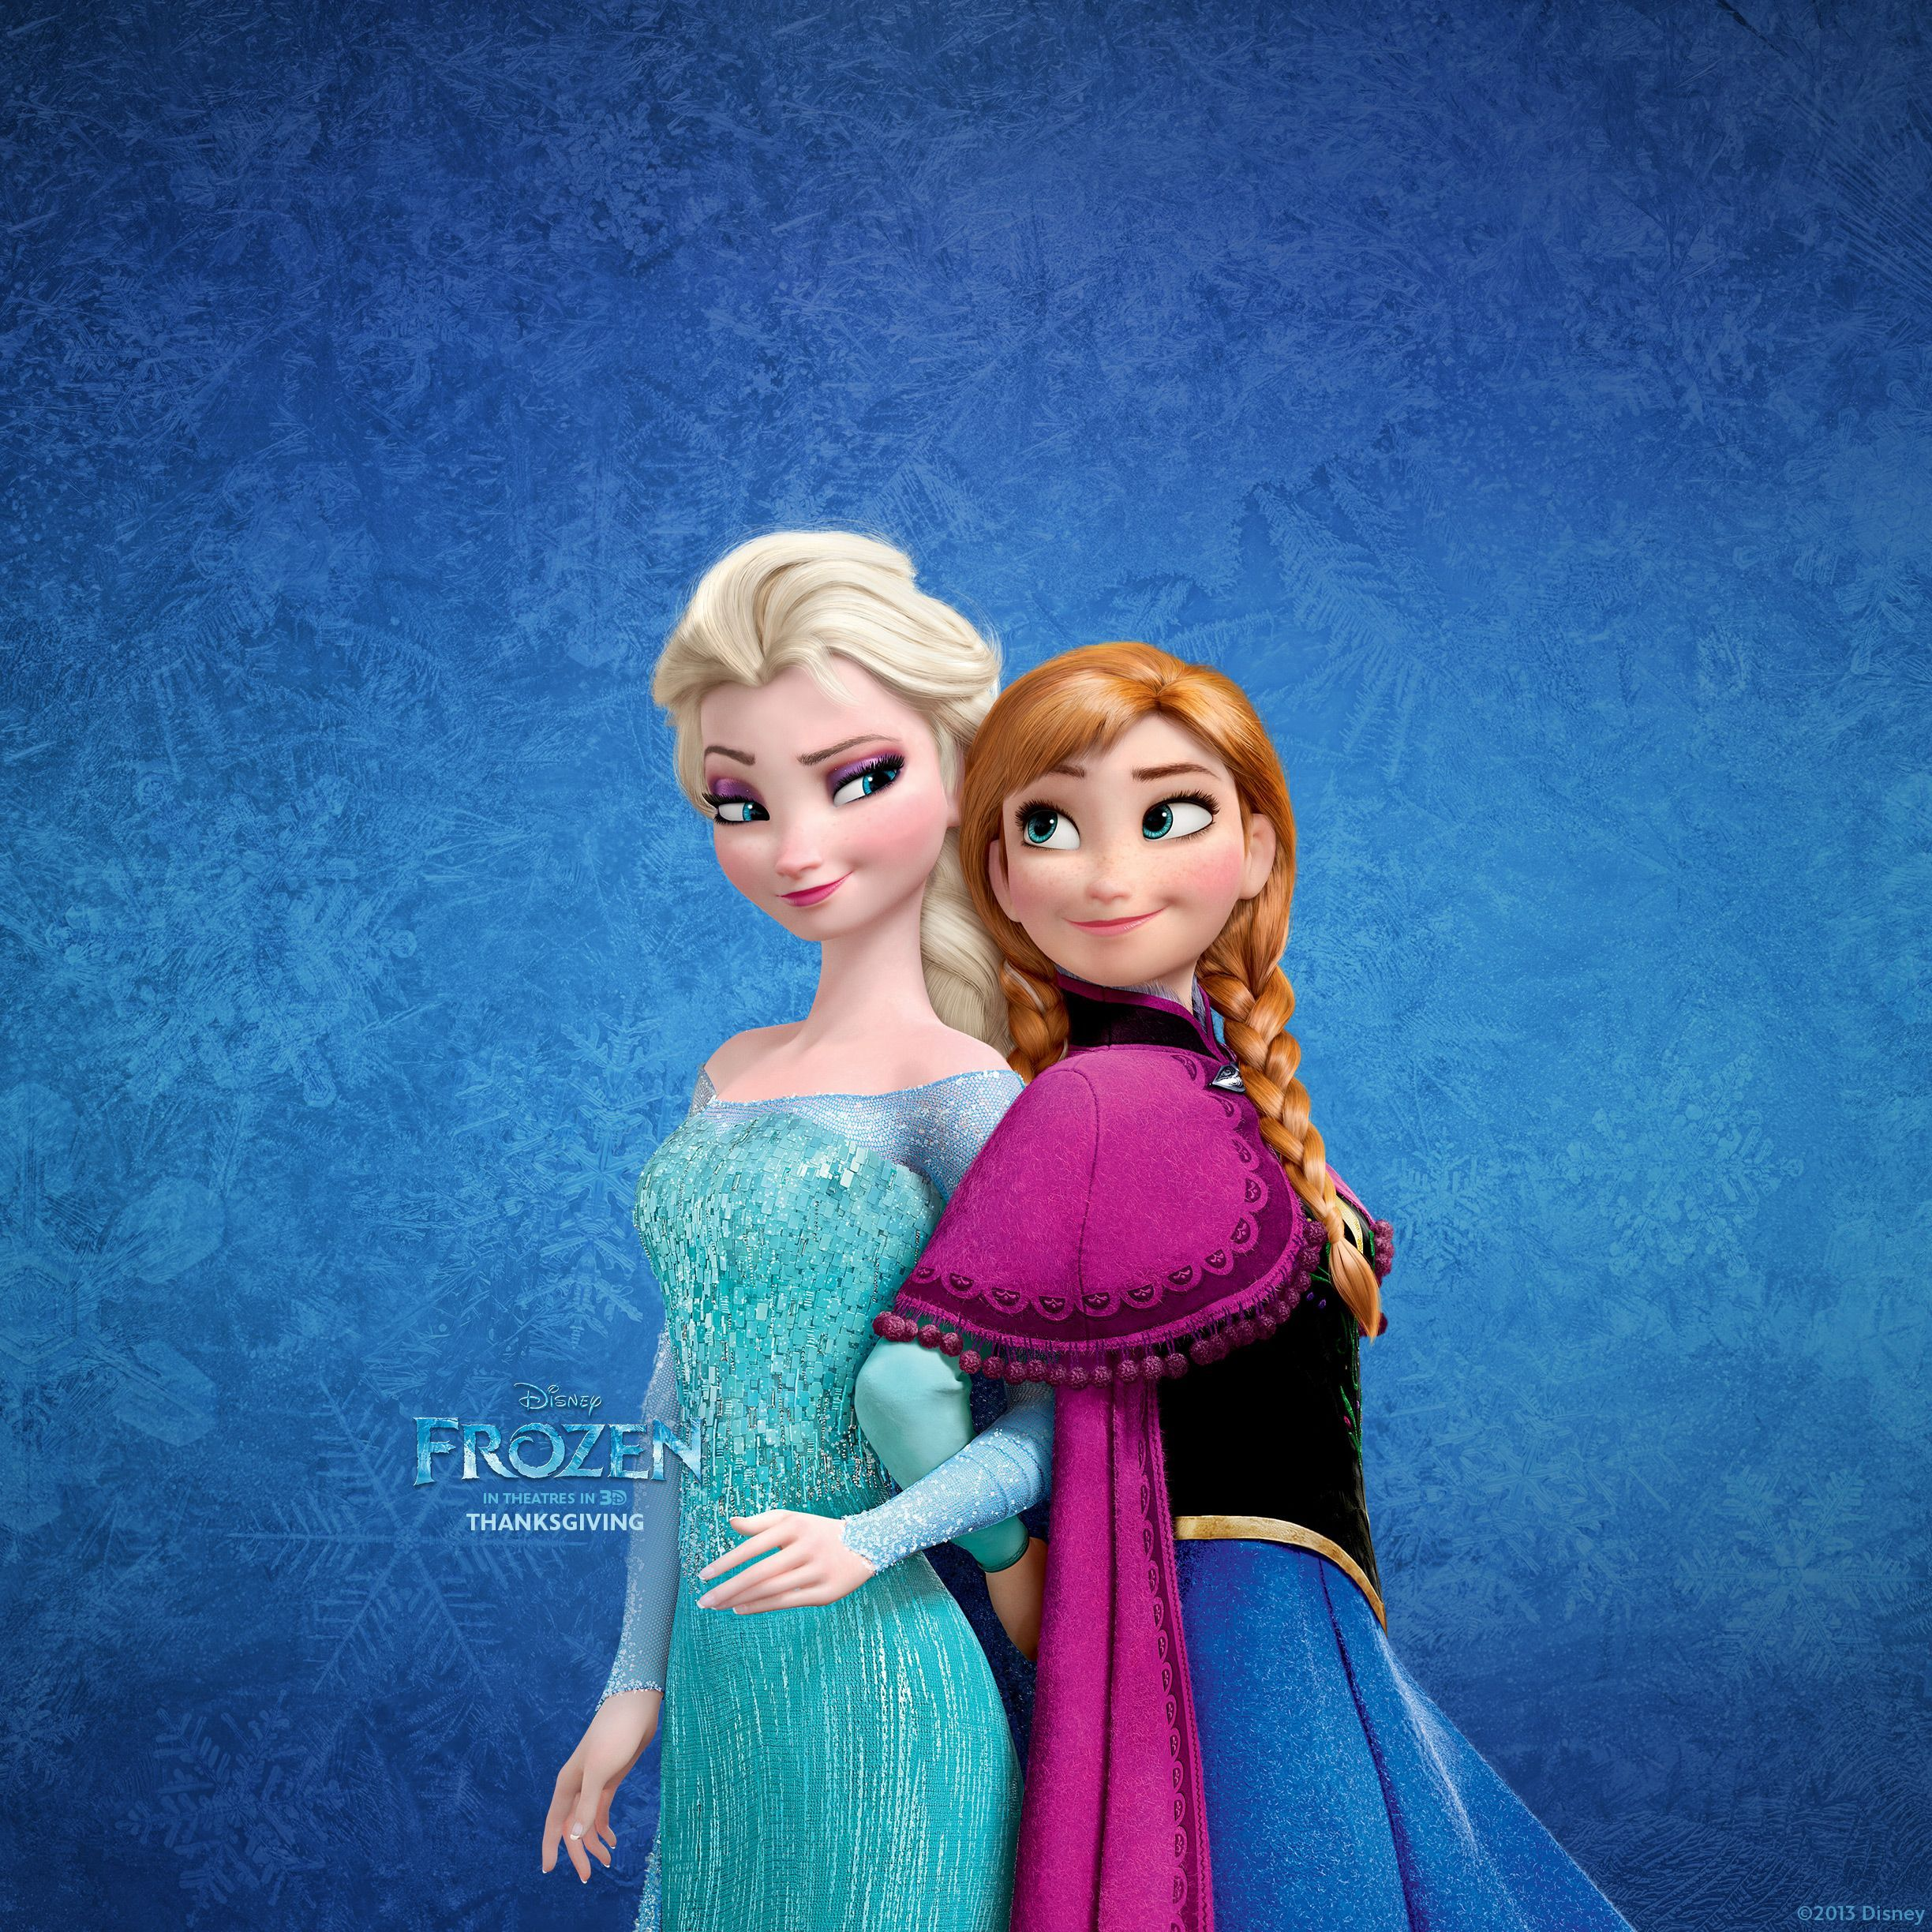 2448x2448 Frozen Elsa and Anna Wallpaper for Ipad | Frozen | Pinterest | Elsa